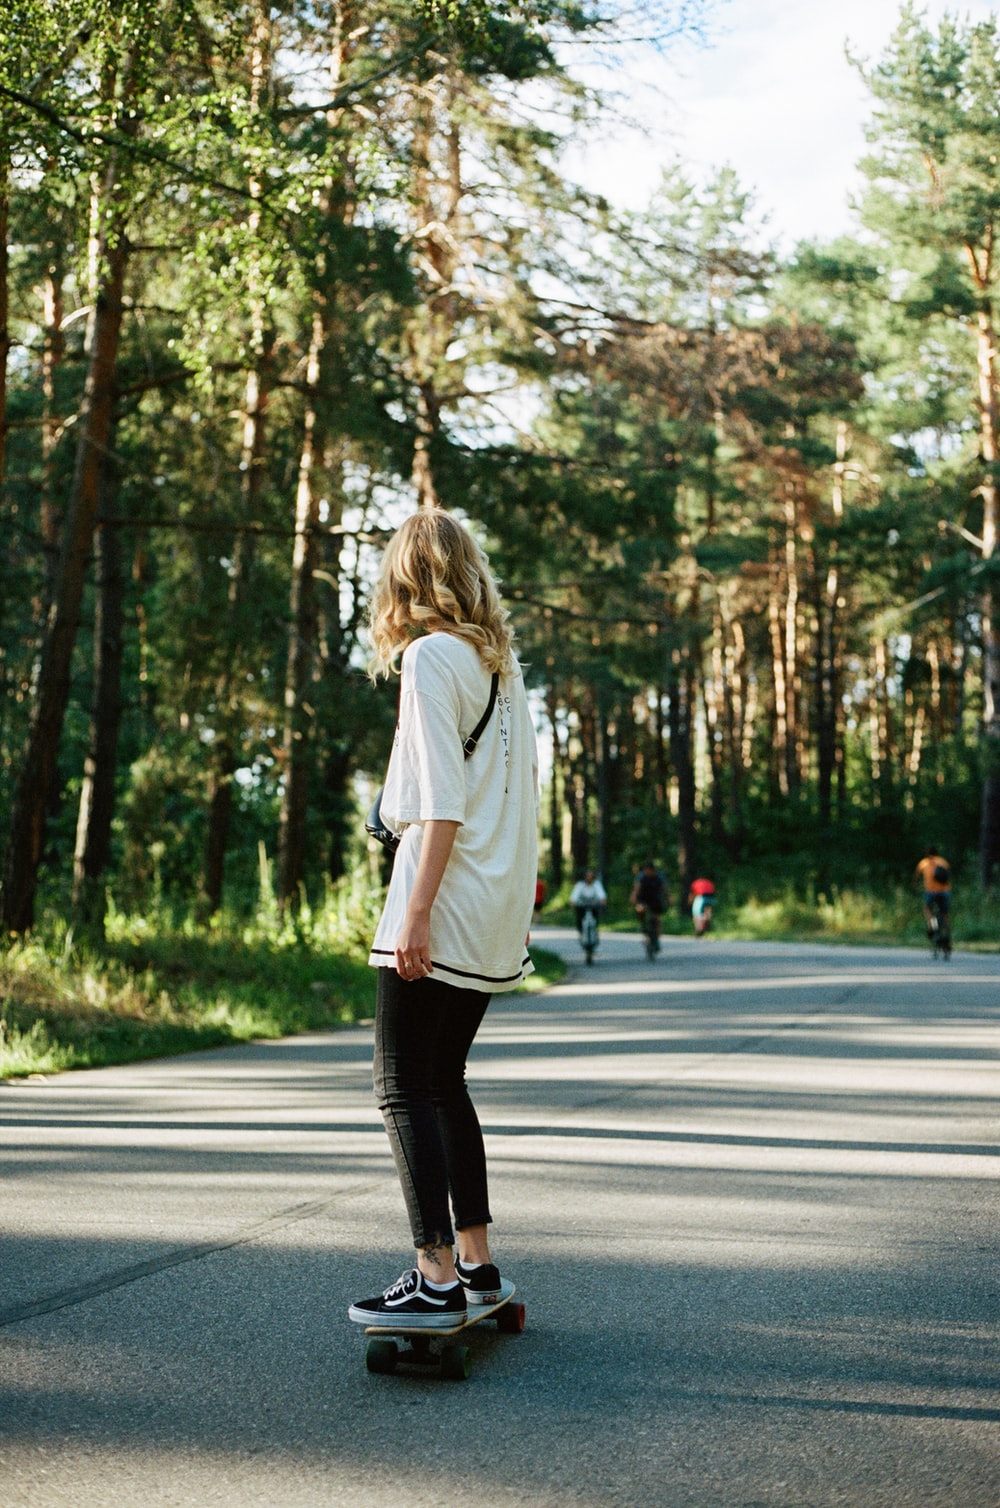 woman in white long sleeve shirt and black pants walking on road during daytime